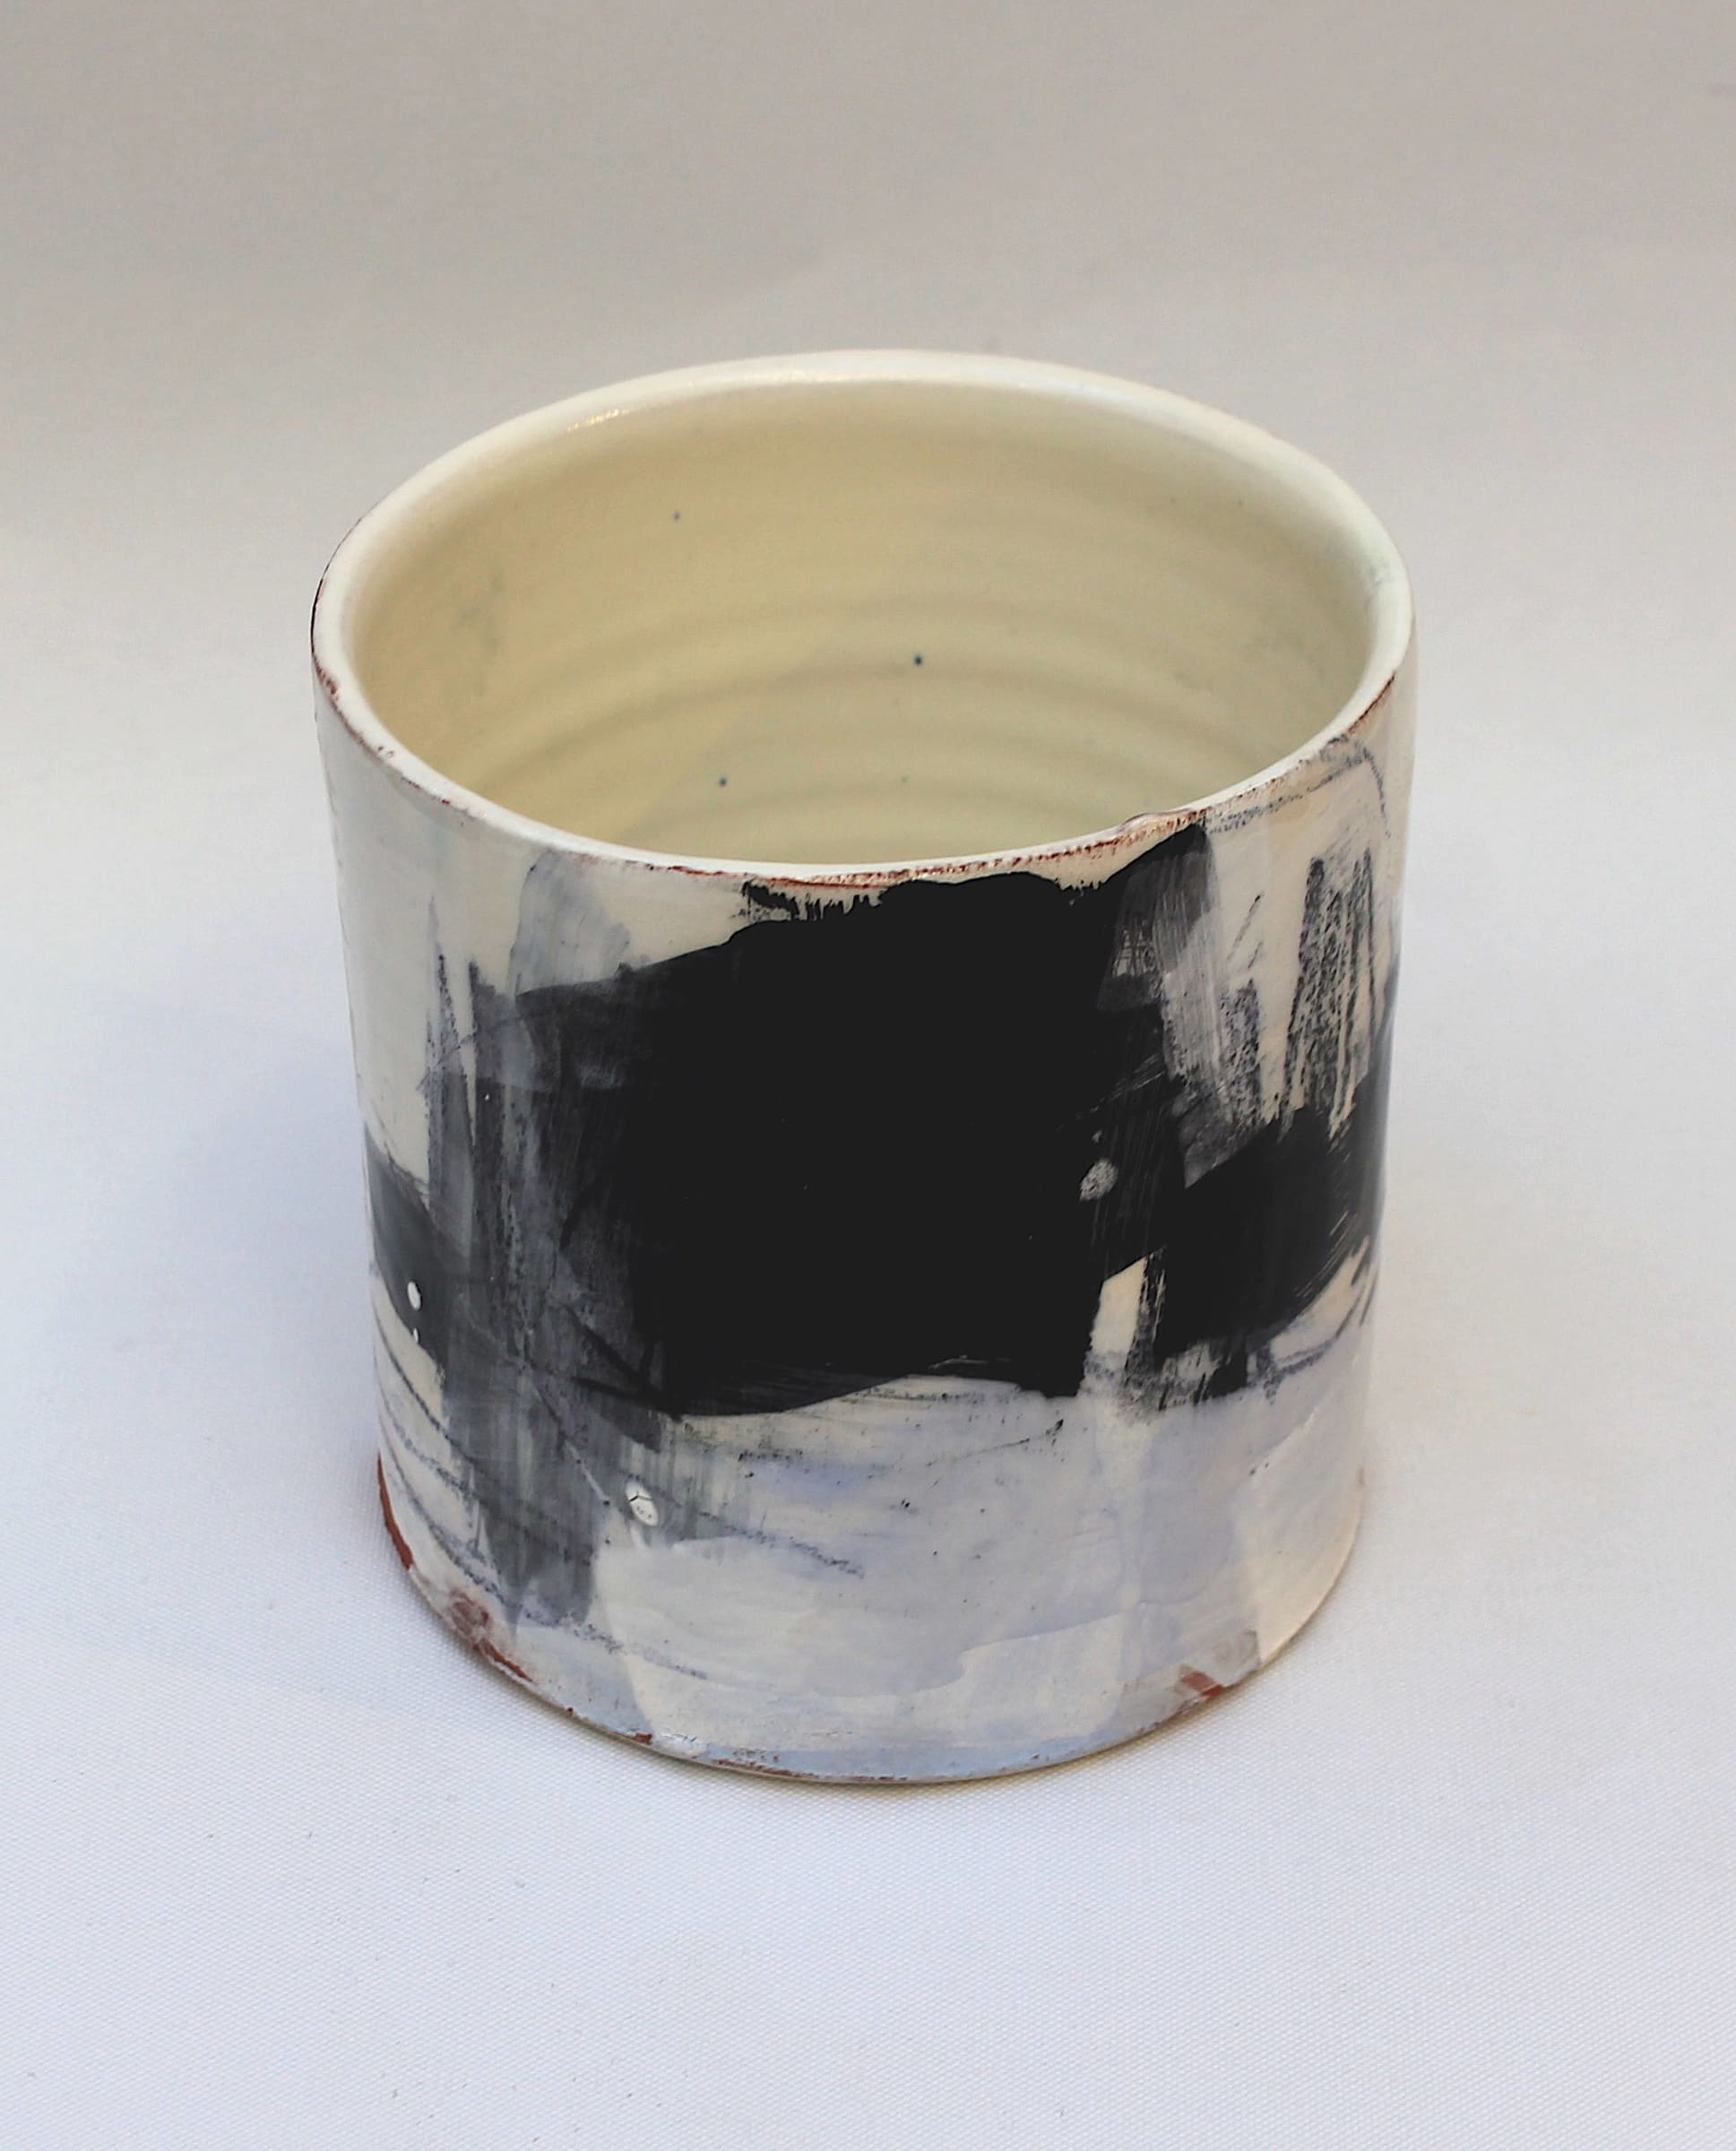 """<span class=""""link fancybox-details-link""""><a href=""""/artists/34-barry-stedman/works/4151-barry-stedman-thrown-vessel-coast-series-2017/"""">View Detail Page</a></span><div class=""""artist""""><strong>Barry Stedman</strong></div> b. 1965 <div class=""""title""""><em>Thrown Vessel 'Coast' Series</em>, 2017</div> <div class=""""signed_and_dated"""">signed by artist</div> <div class=""""medium"""">thrown and altered earthenware, decorated with slips</div> <div class=""""dimensions"""">11 x 11 cm<br /> 4 3/8 x 4 3/8 inches</div><div class=""""price"""">£240.00</div><div class=""""copyright_line"""">OwnArt: £ 24 x 10 Months, 0% APR</div>"""